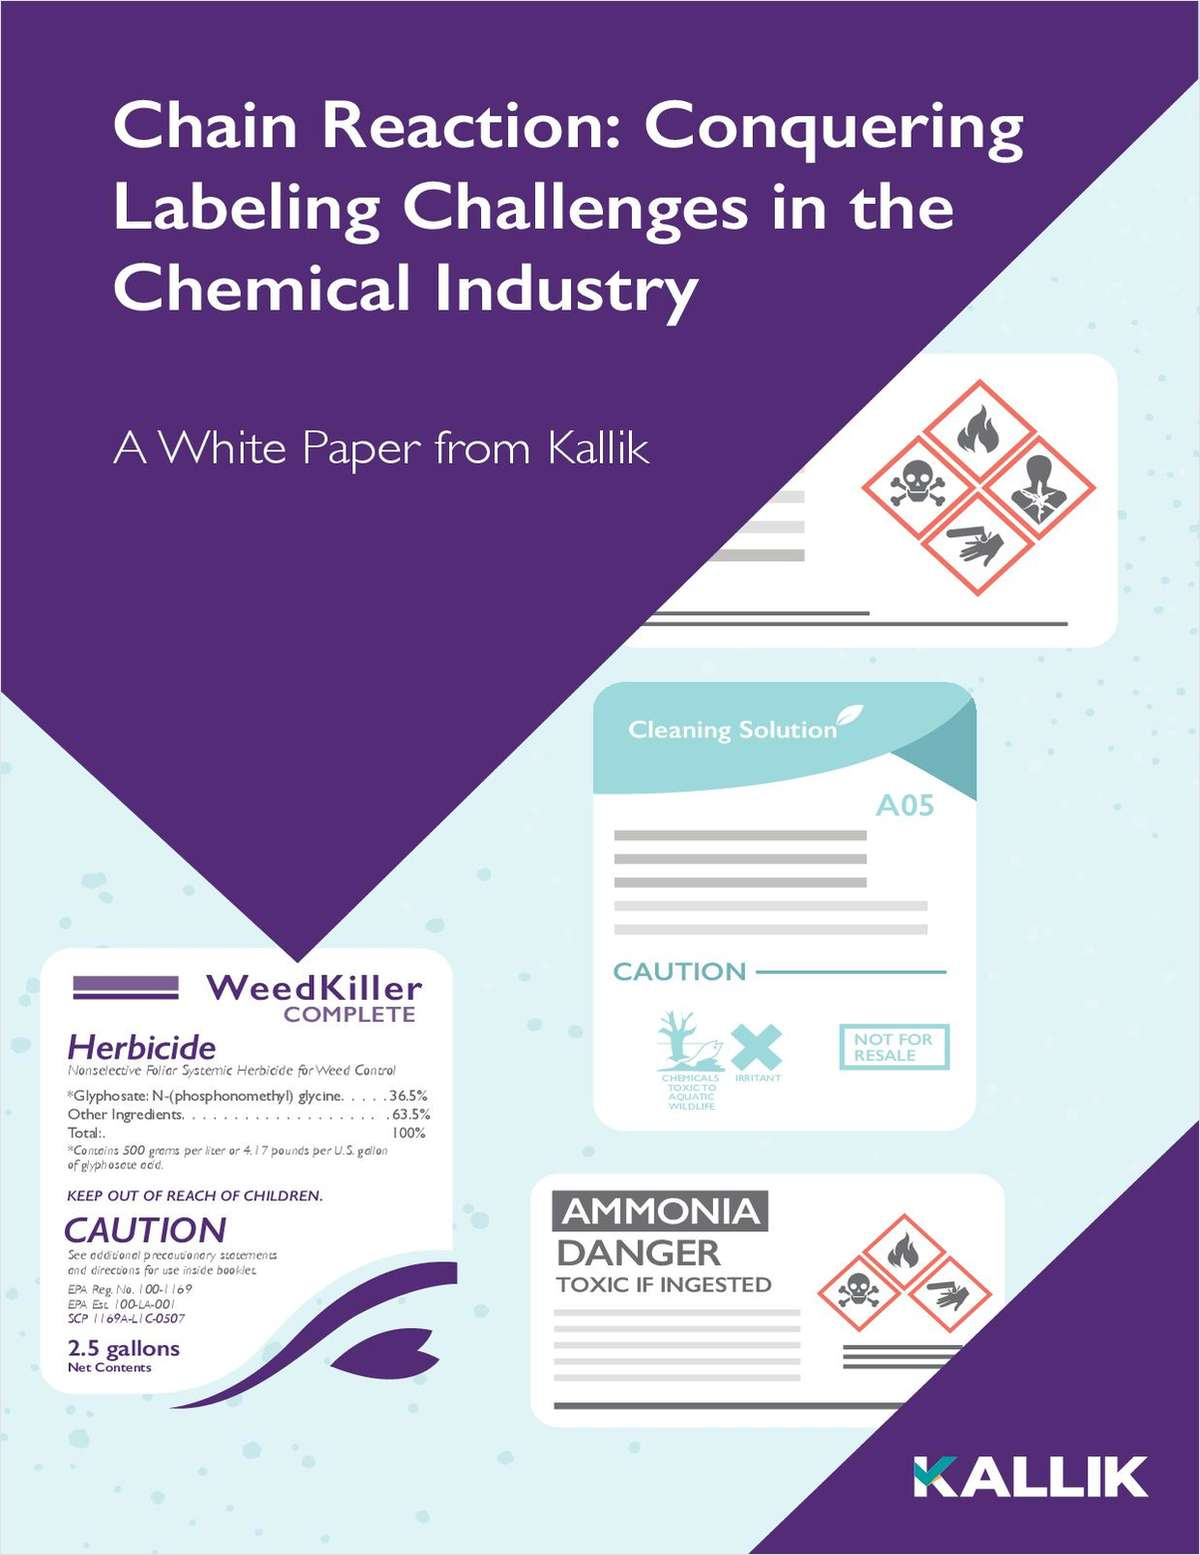 Chain Reaction: Conquering Labeling Challenges in the Chemical Industry